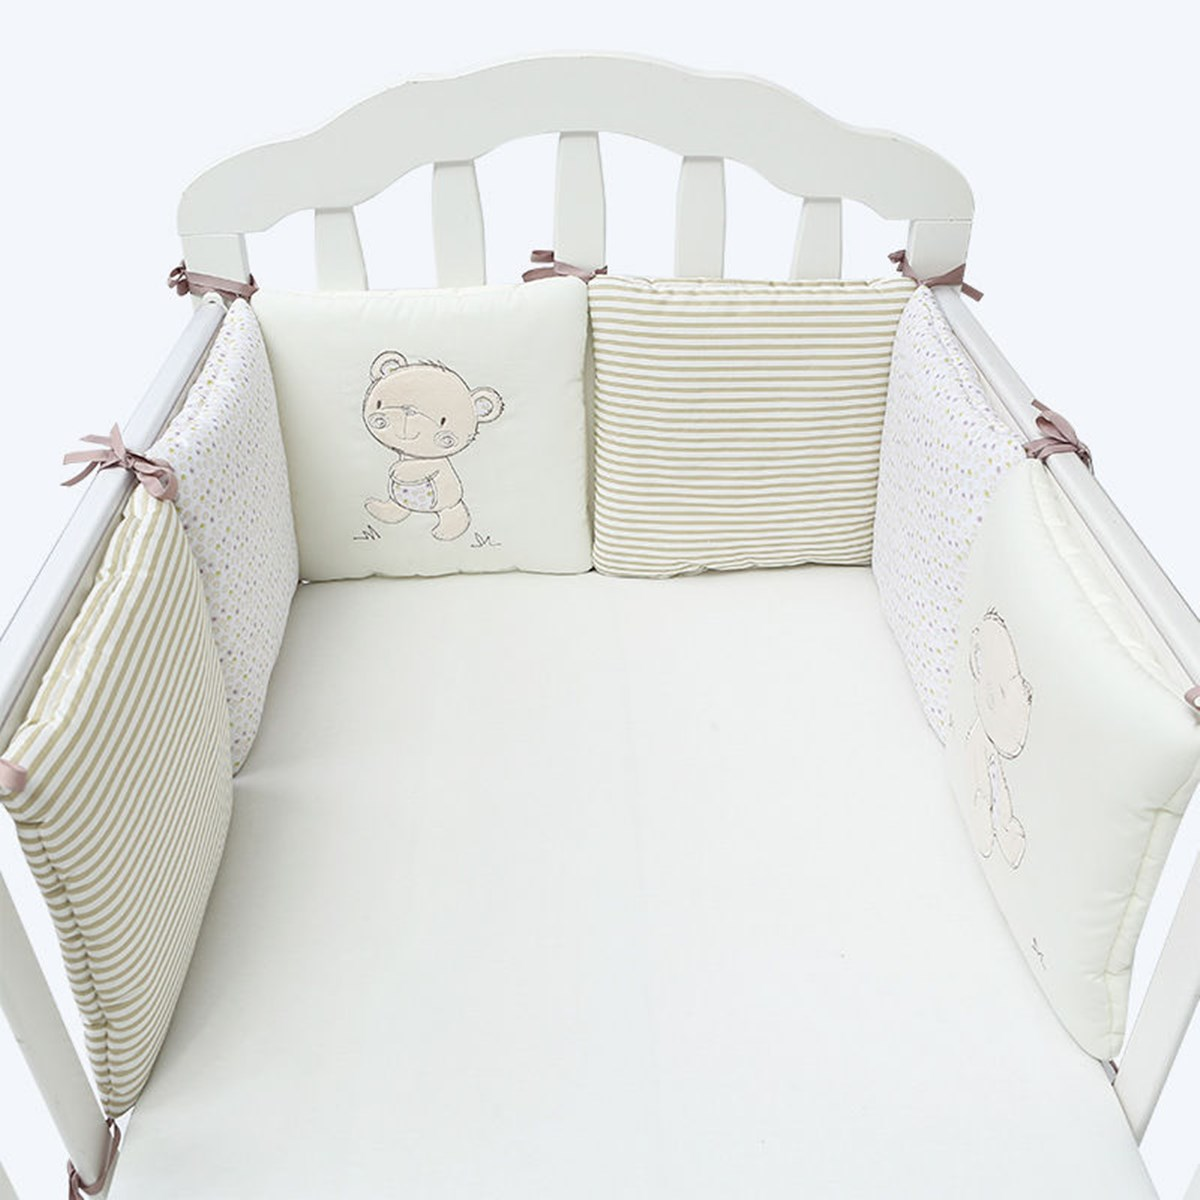 Crib protector for babies - Baby Infant Cot Crib Bumper Cushion Pad Safety Protector Toddler Nursery Bedding Baby Sleeping Protection Home